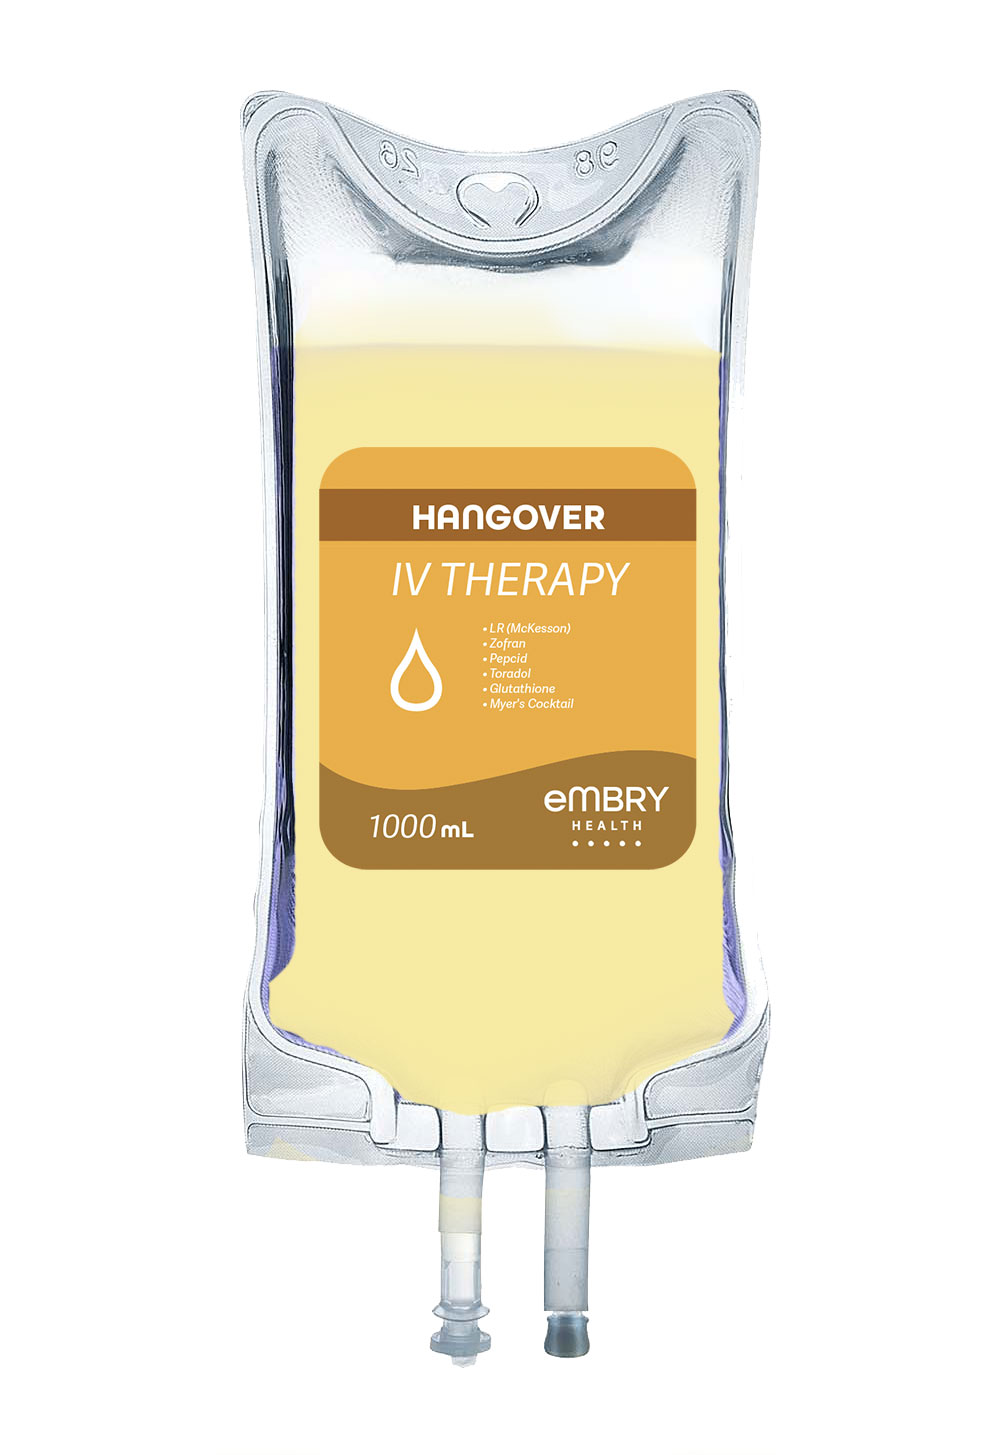 A blend of IV fluids, electrolytes, vitamins, and medications to detoxify your body and cure your hangover symptoms.